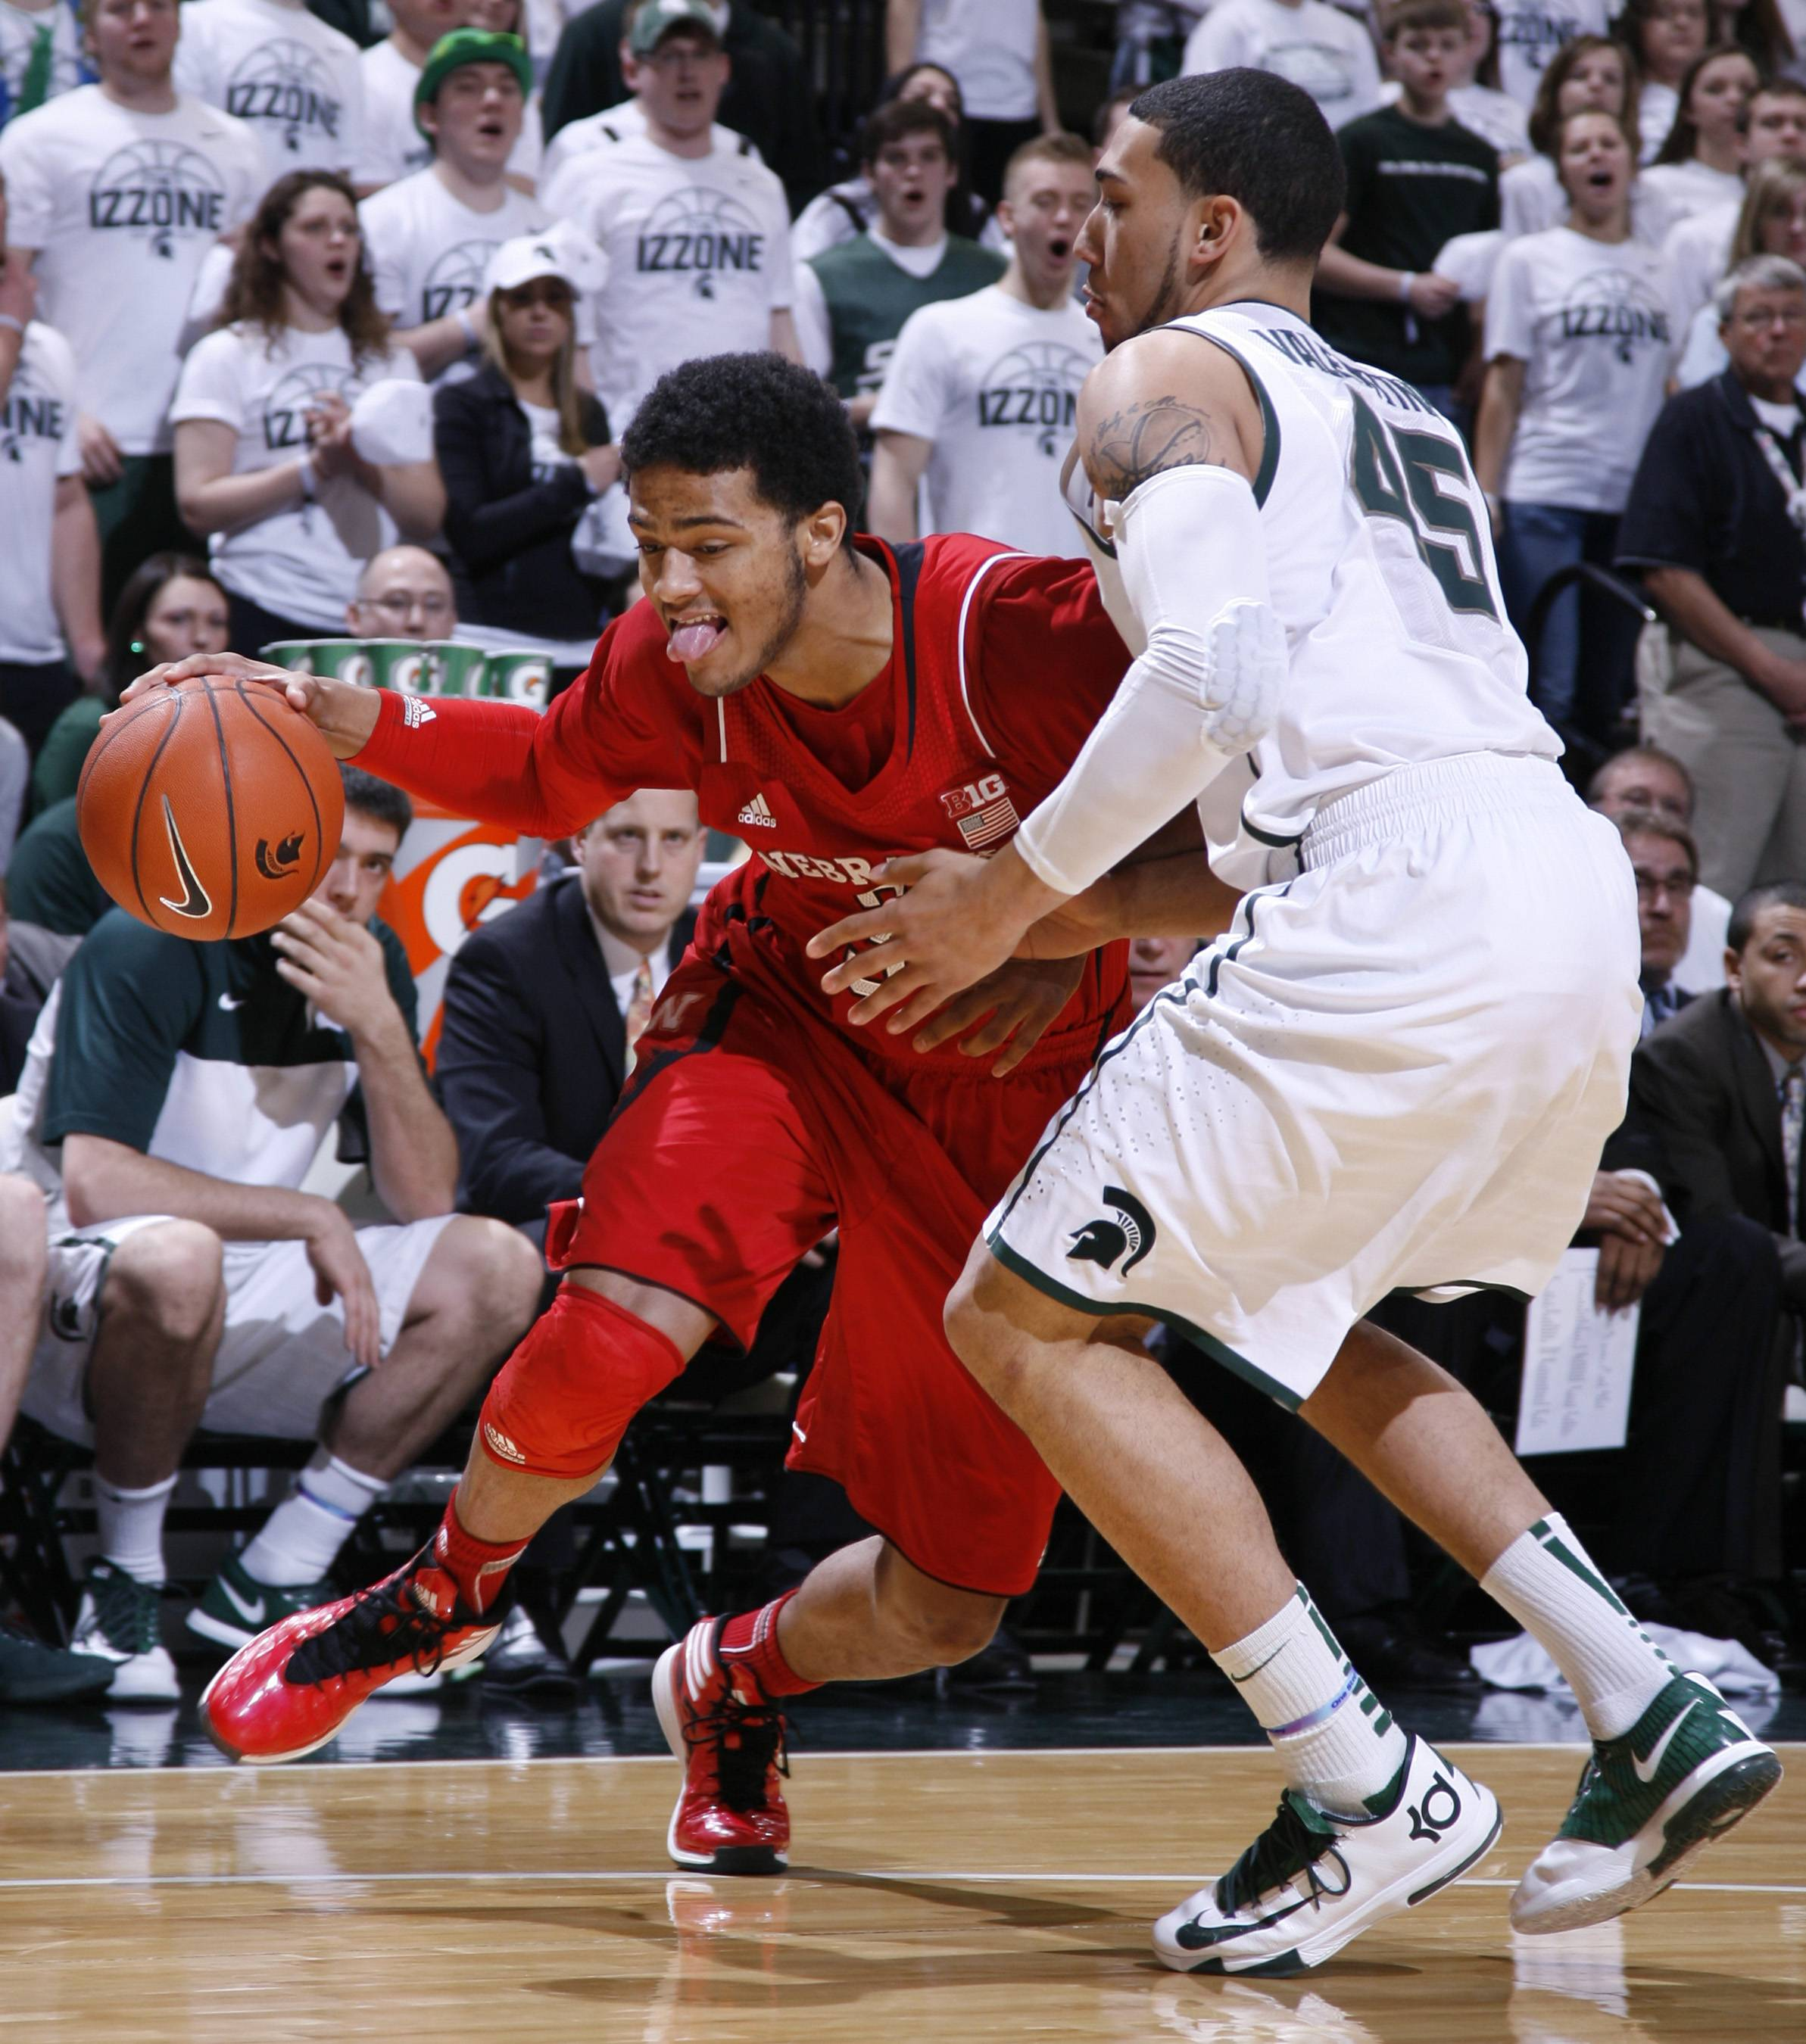 Nebraska's Benny Parker drives against Michigan State's Denzel Valentine during the first half of Sunda's game in East Lansing, Mich. Nebraska won 60-51.